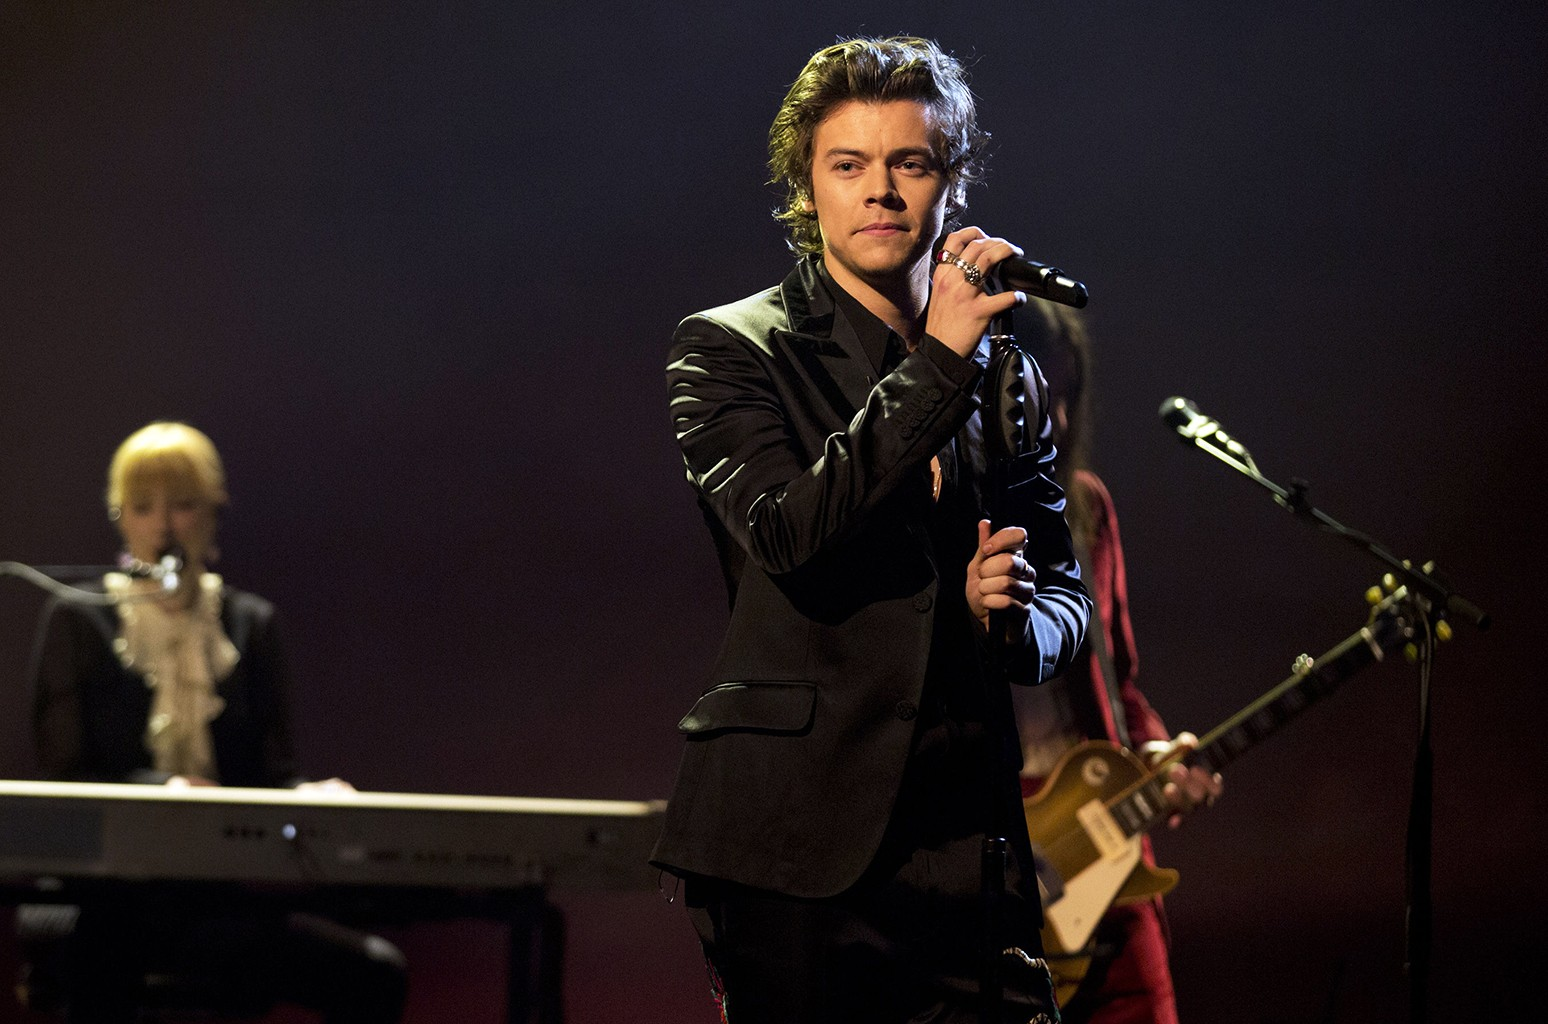 Harry Styles performs during the filming of The Graham Norton Show at The London Studios.